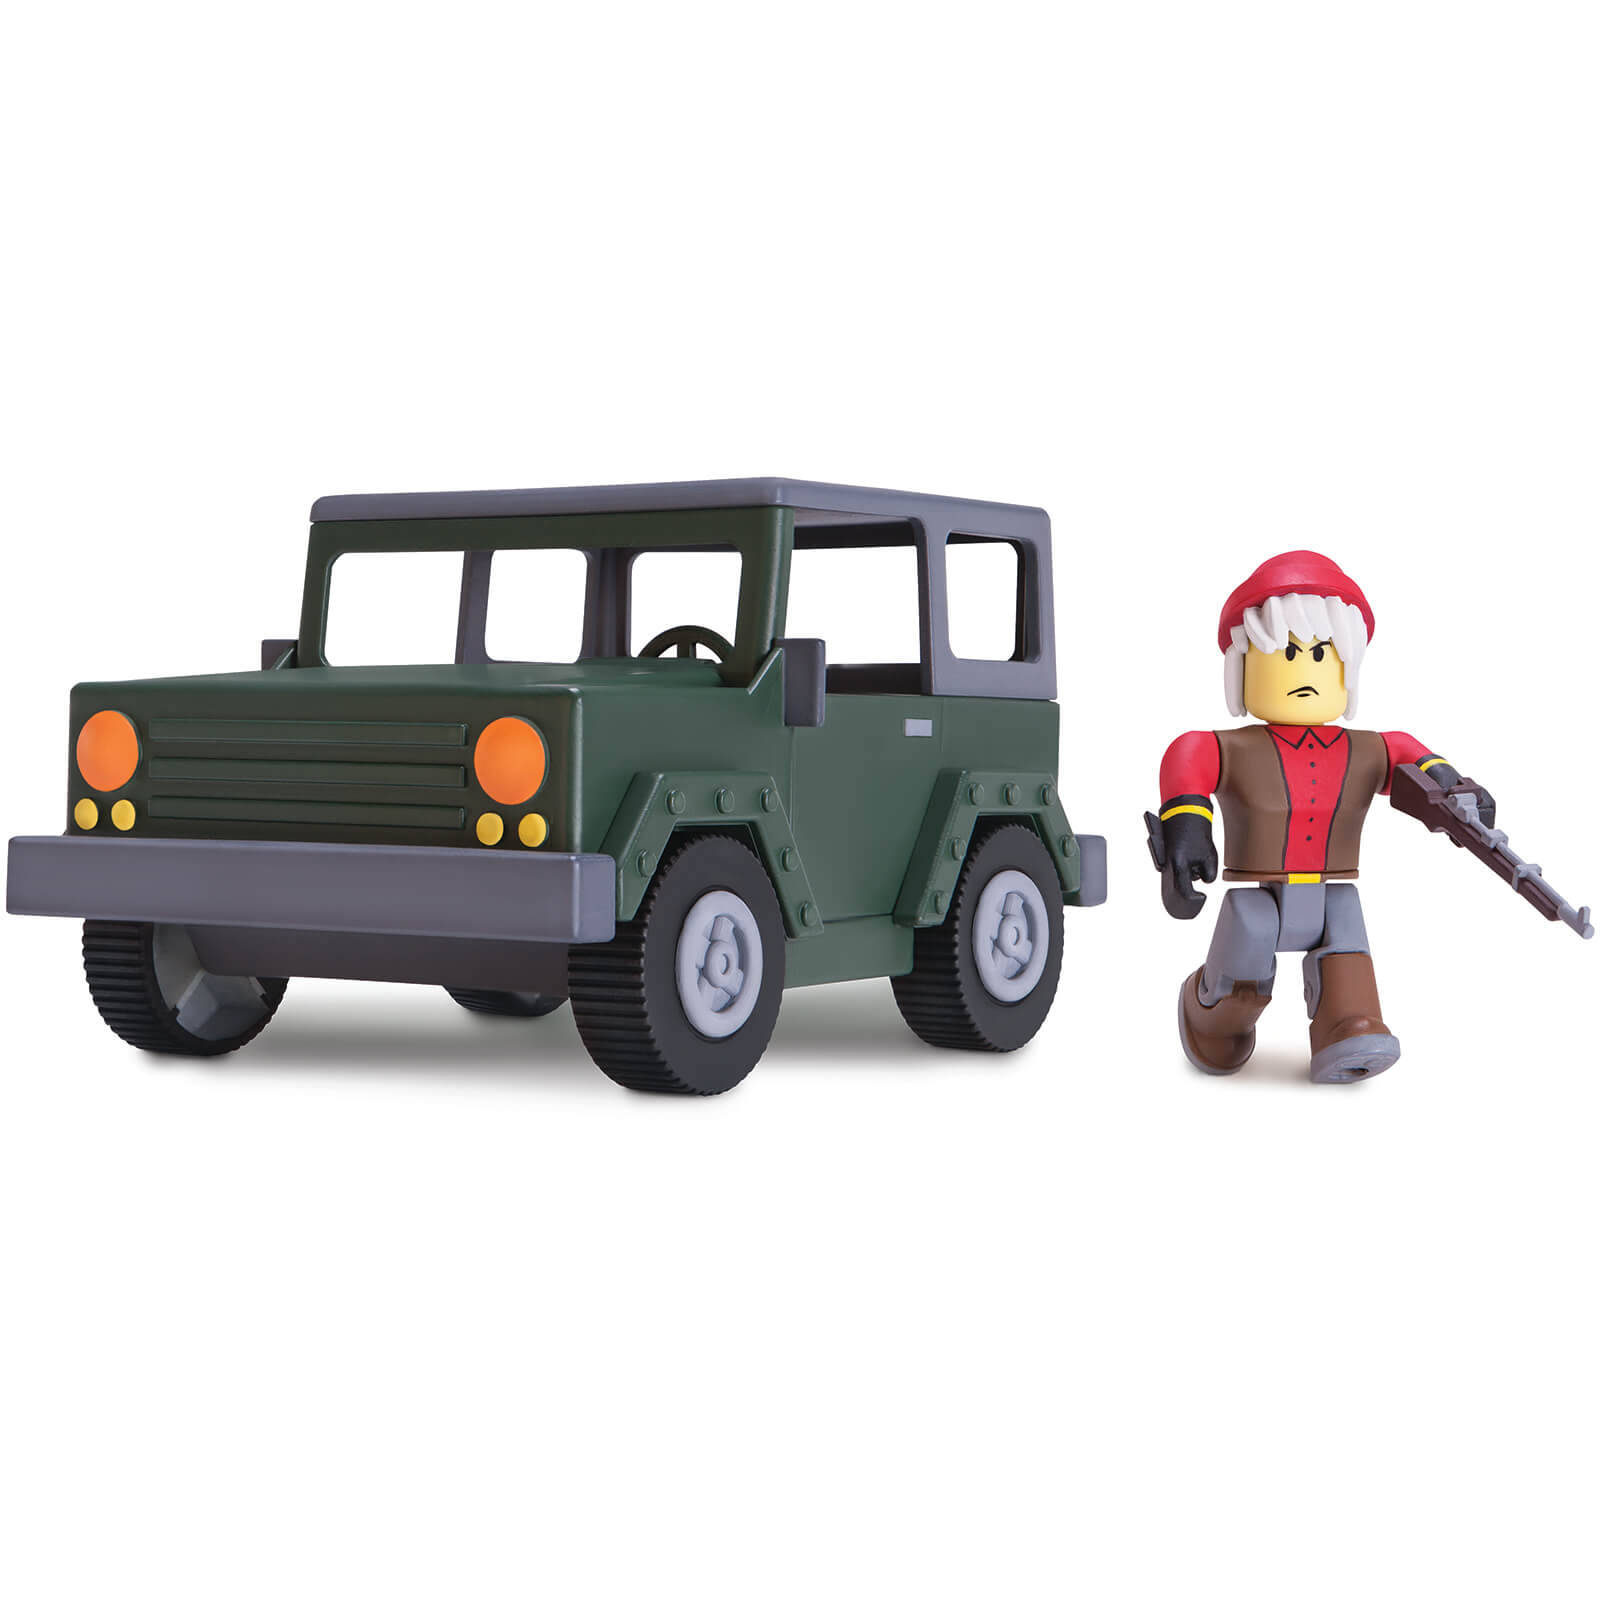 ROBLOX Apocalypse Rising 4x4 Vehicle Pack